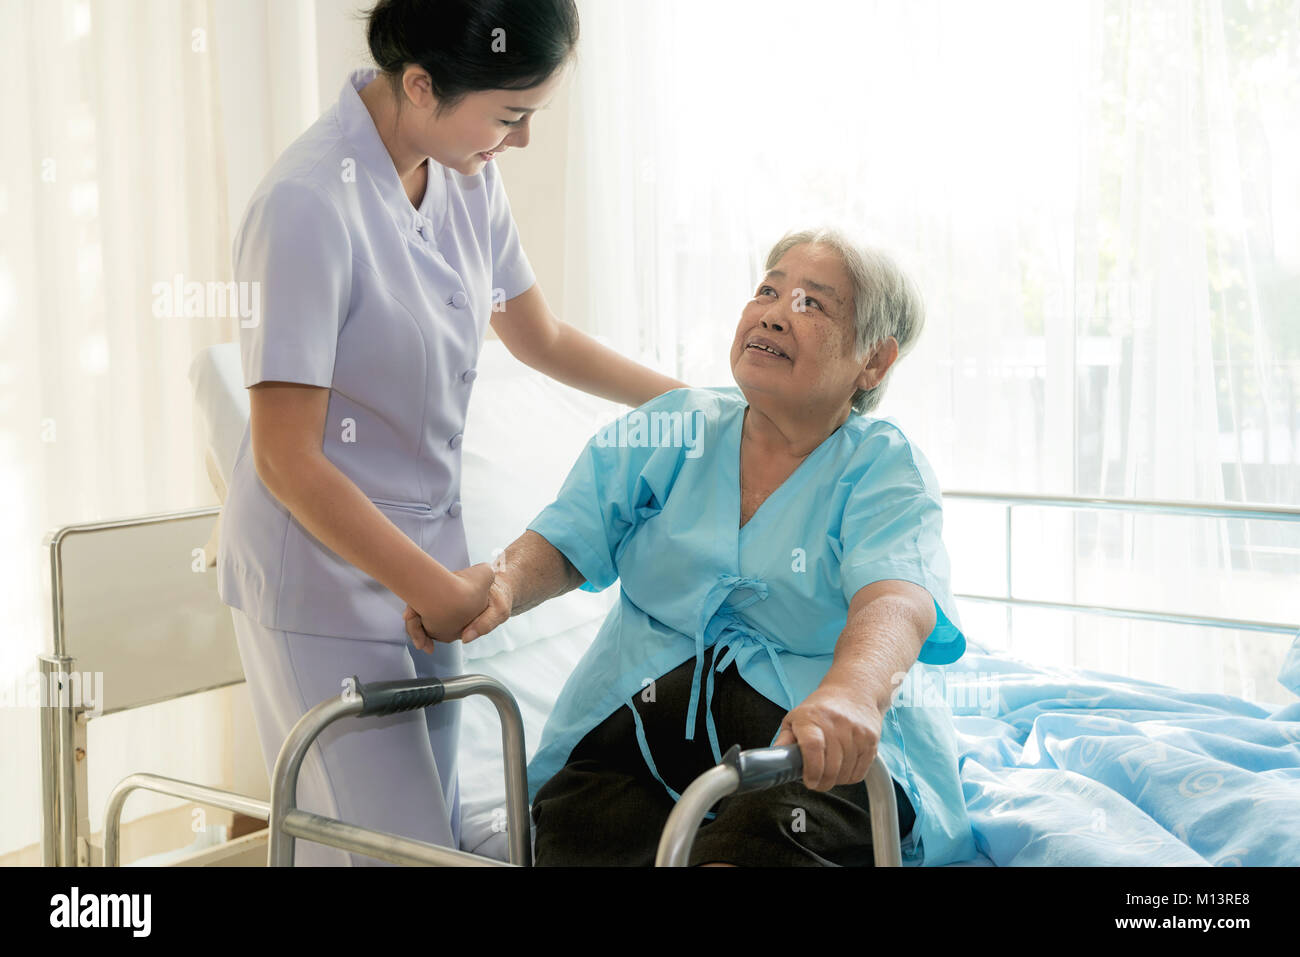 Asian young nurse supporting elderly patient disabled woman in using walker in hospital. Elderly patient care concept. - Stock Image